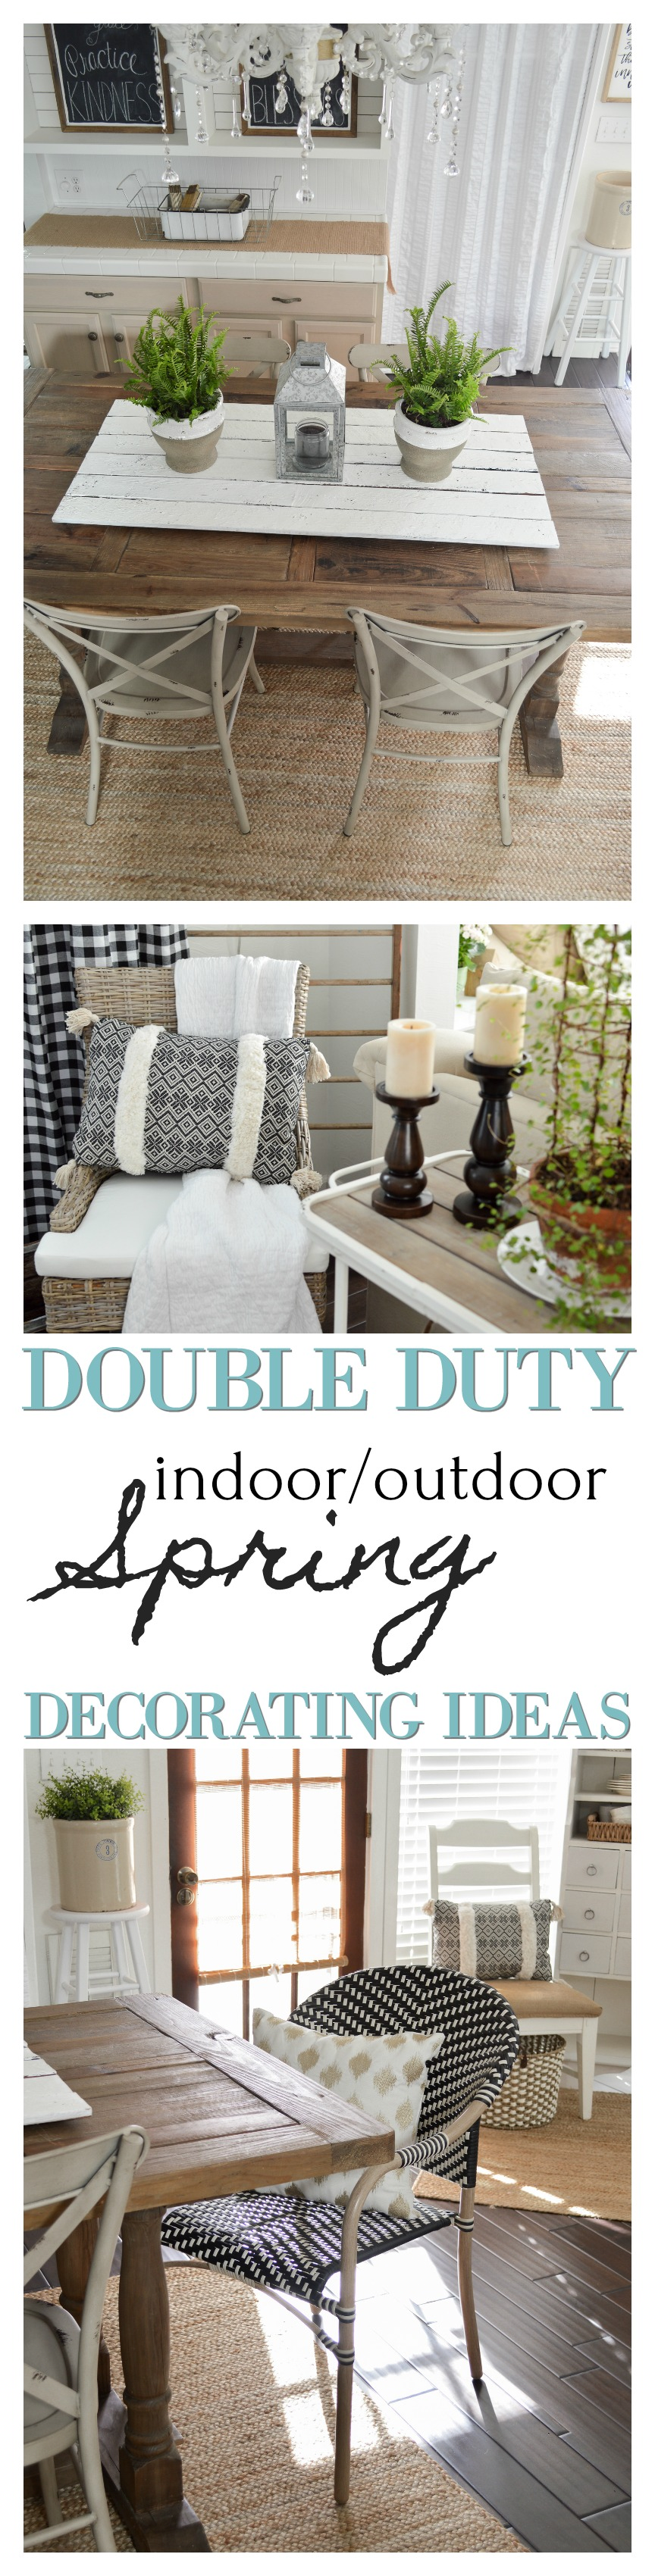 Double duty indoor decorating ideas for Spring with outdoor furniture and decor with Better Homes & Gardens at www.foxhollowcottage.com #sponsored | Simple, affordable cottage Farmhouse decorating inspiration